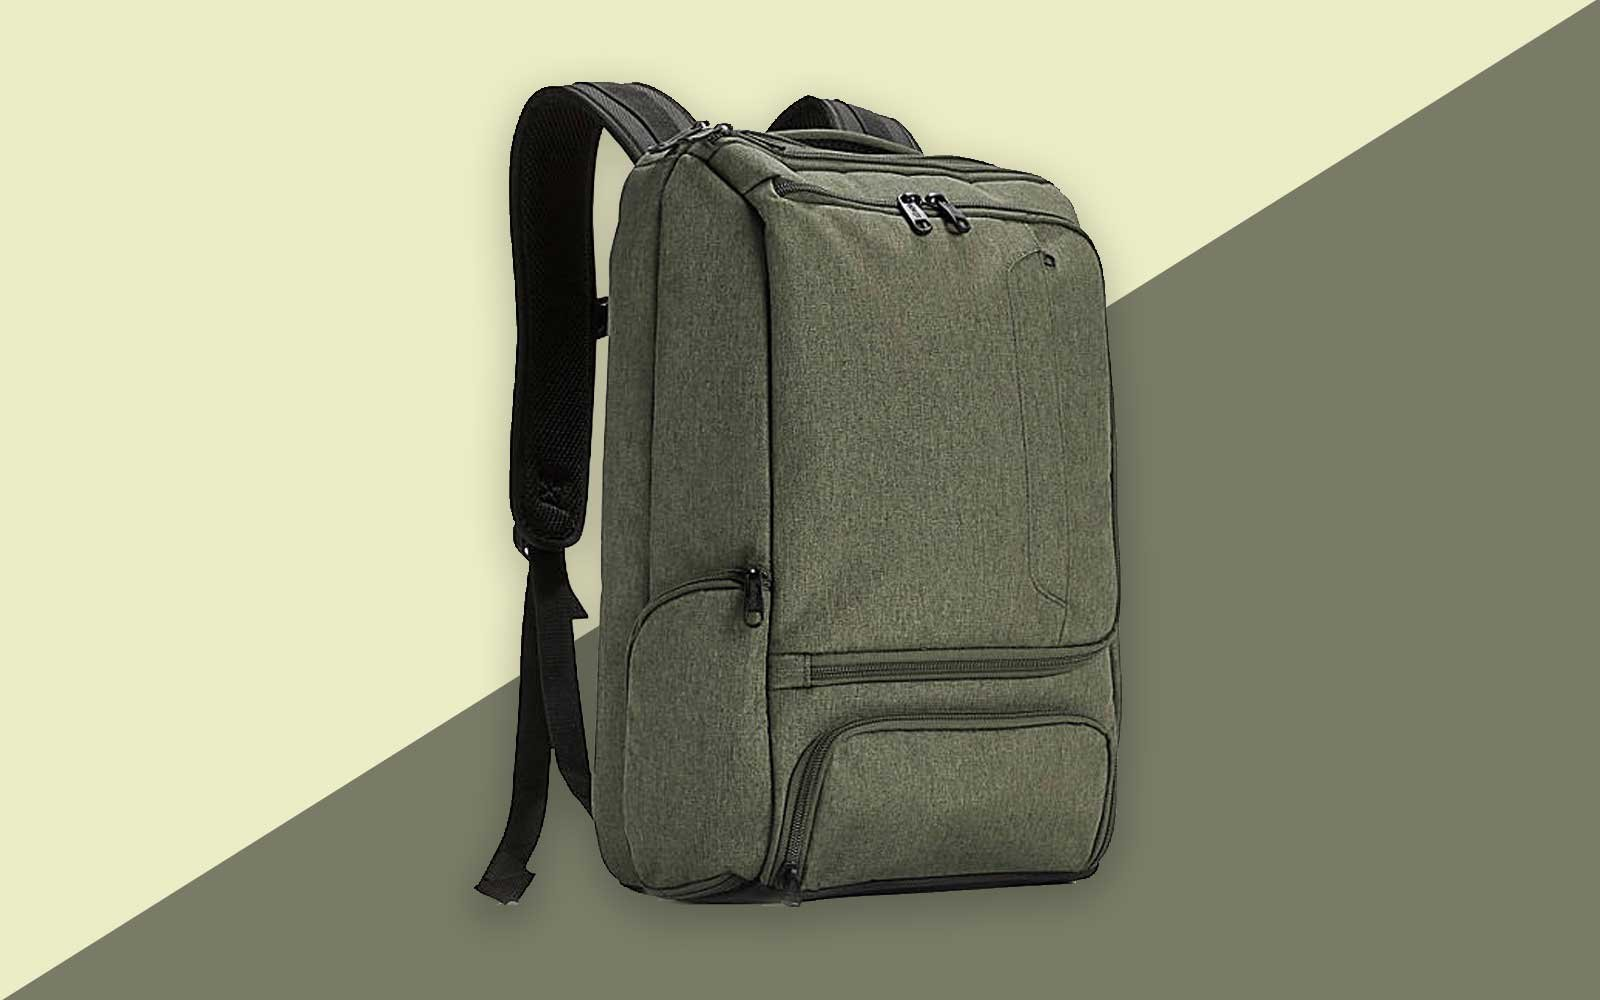 eBags Backpack Cyber Monday